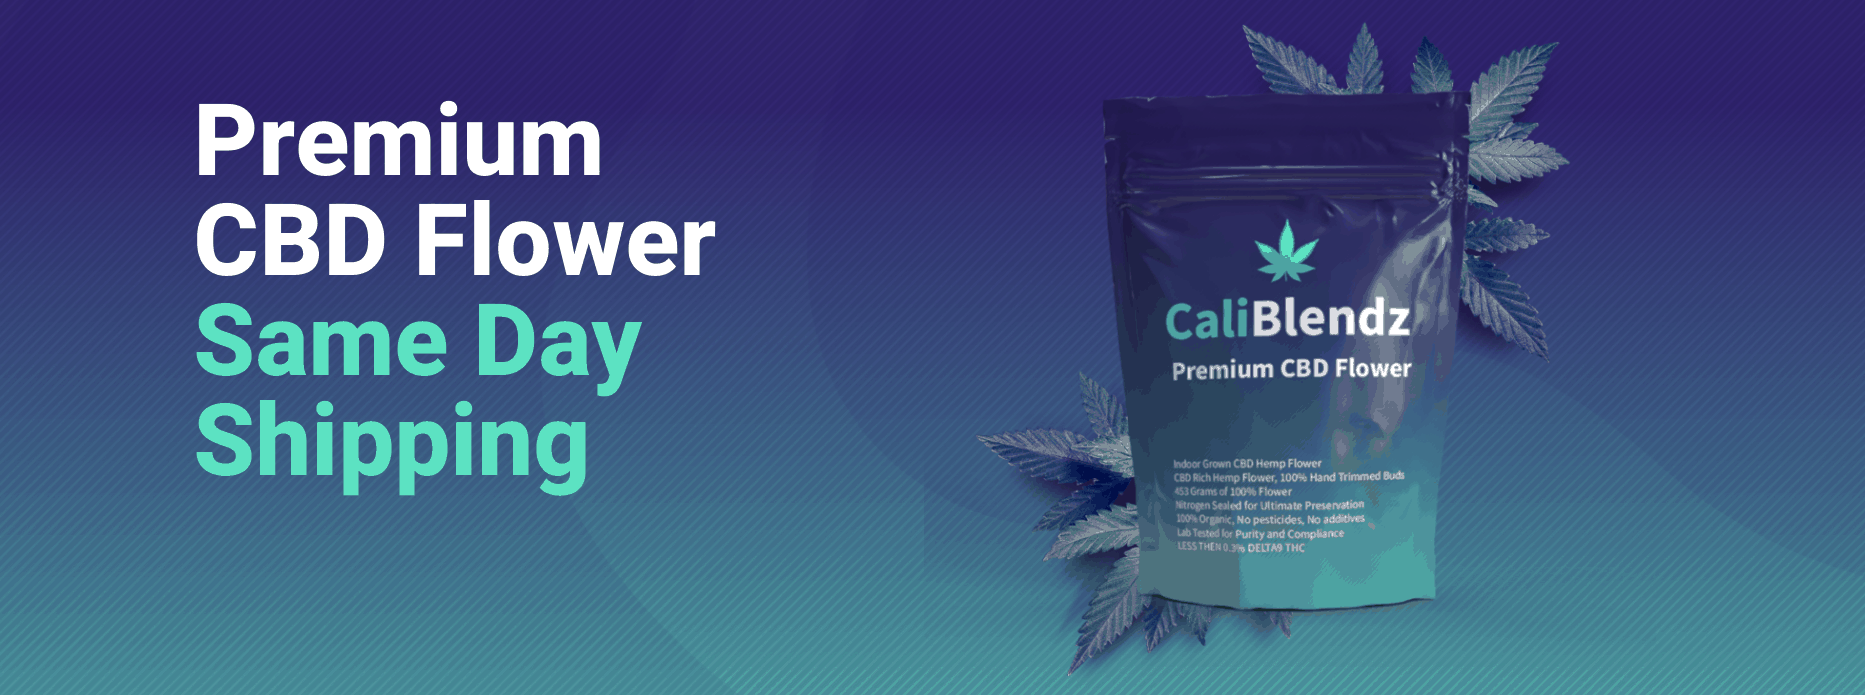 CaliBlendz CBD Coupon Code Premium Flower